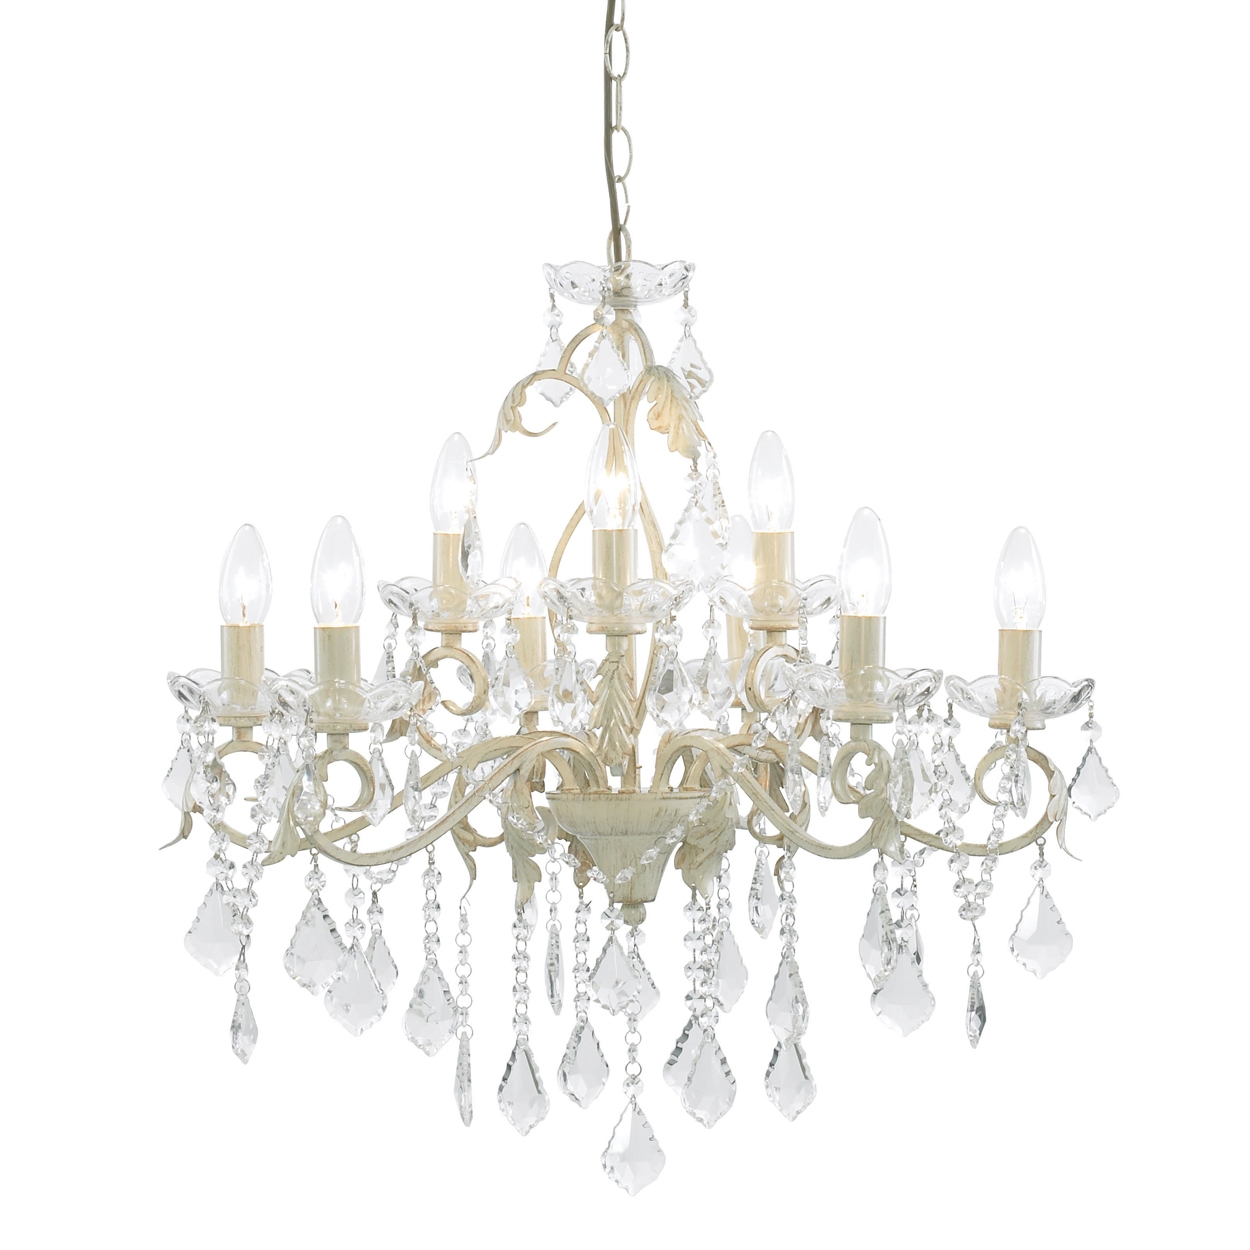 Featured Image of Cream Crystal Chandelier